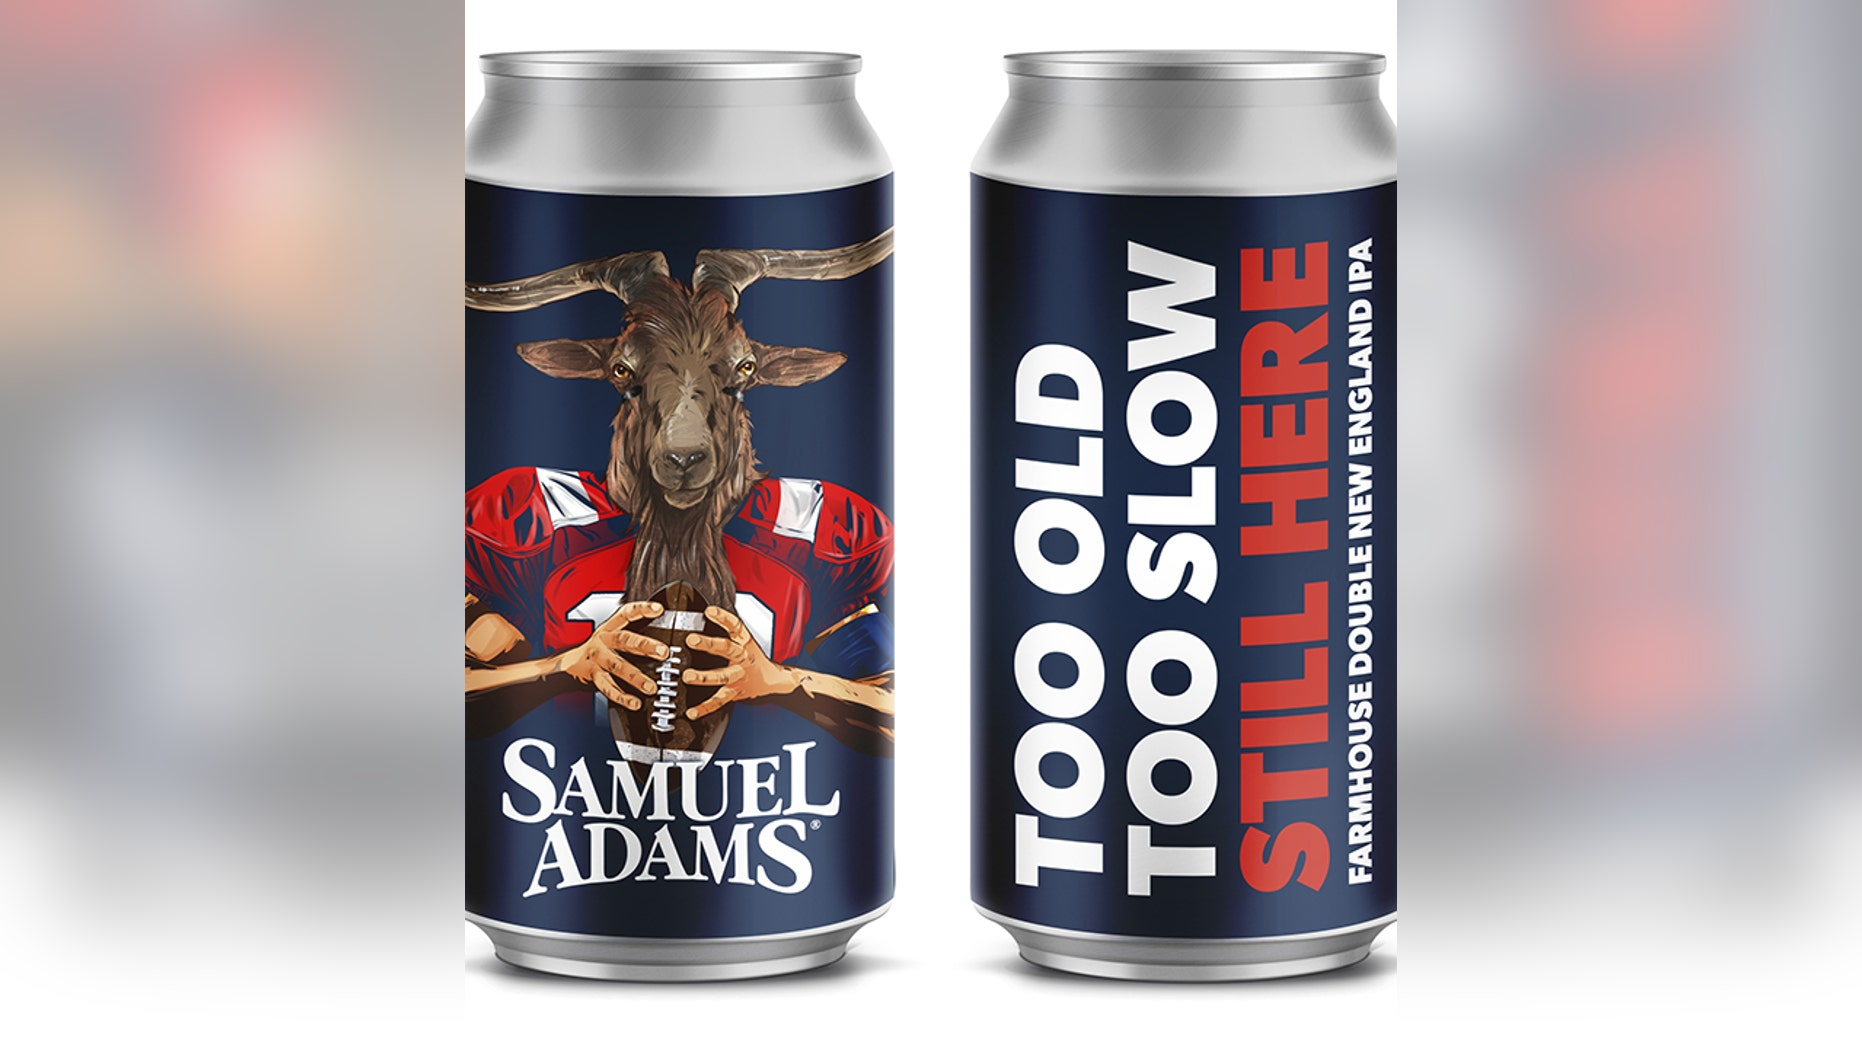 Samuel Adams' latest brew is dedicated to the New England Patriots.